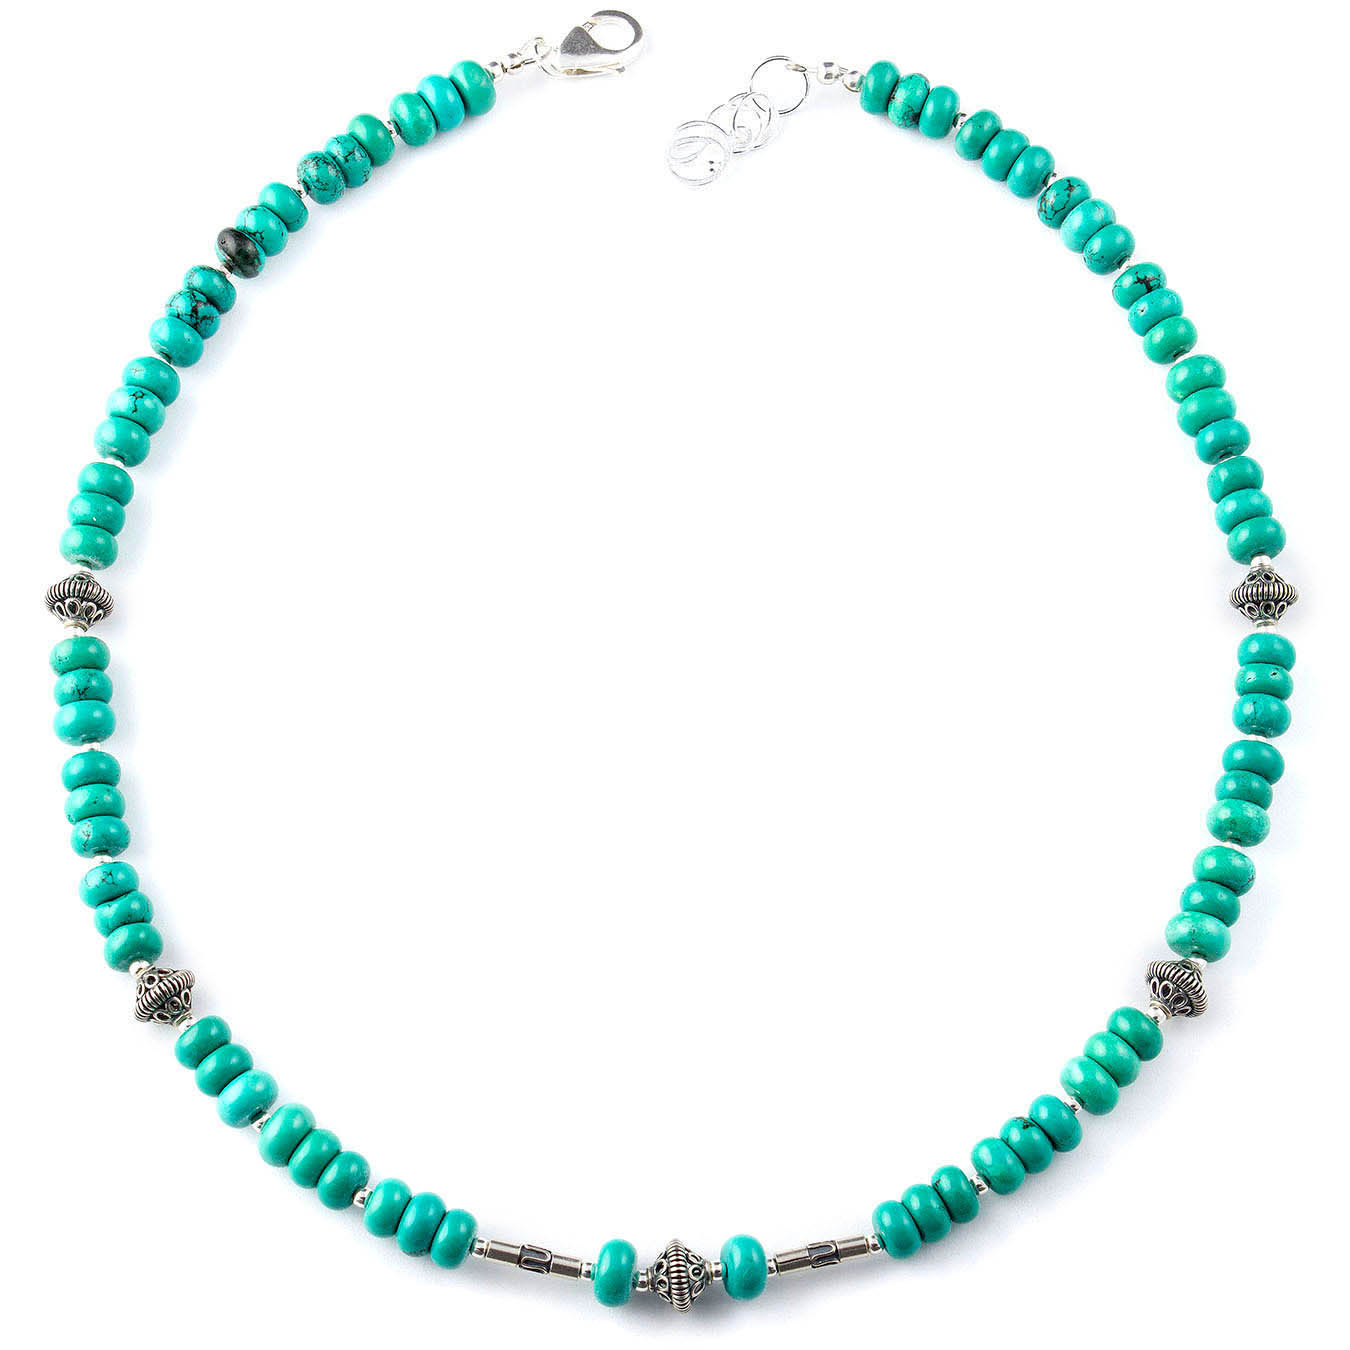 Beaded December birthstone jewelry with turquoise and bali beads